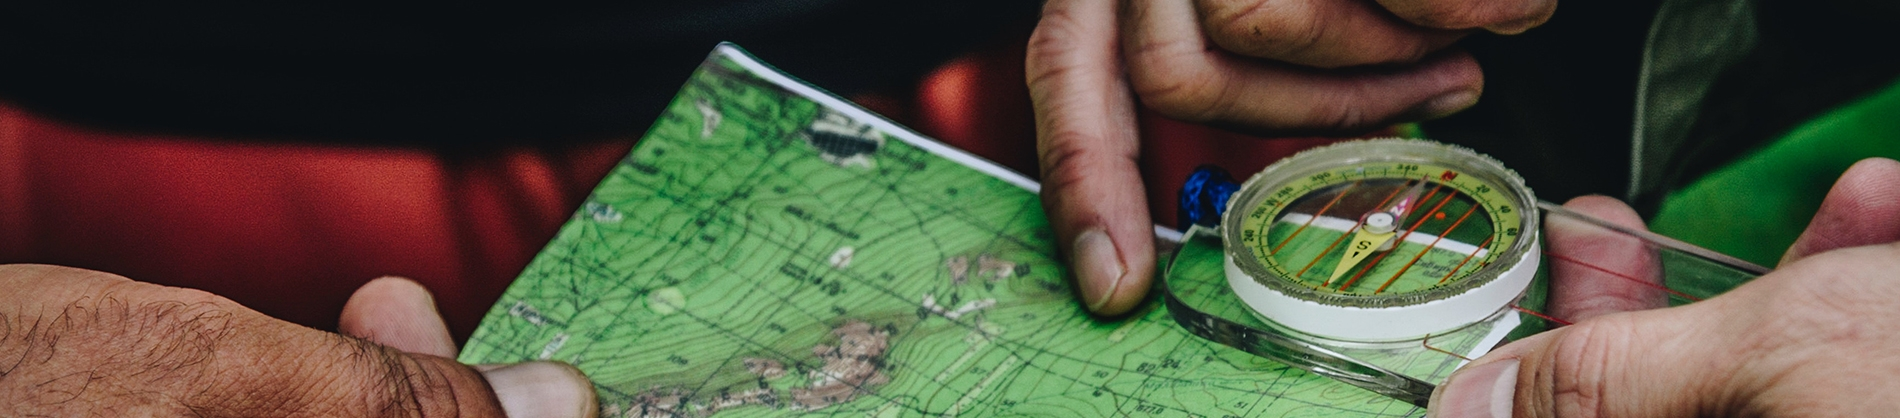 Two people looking at a map and compass